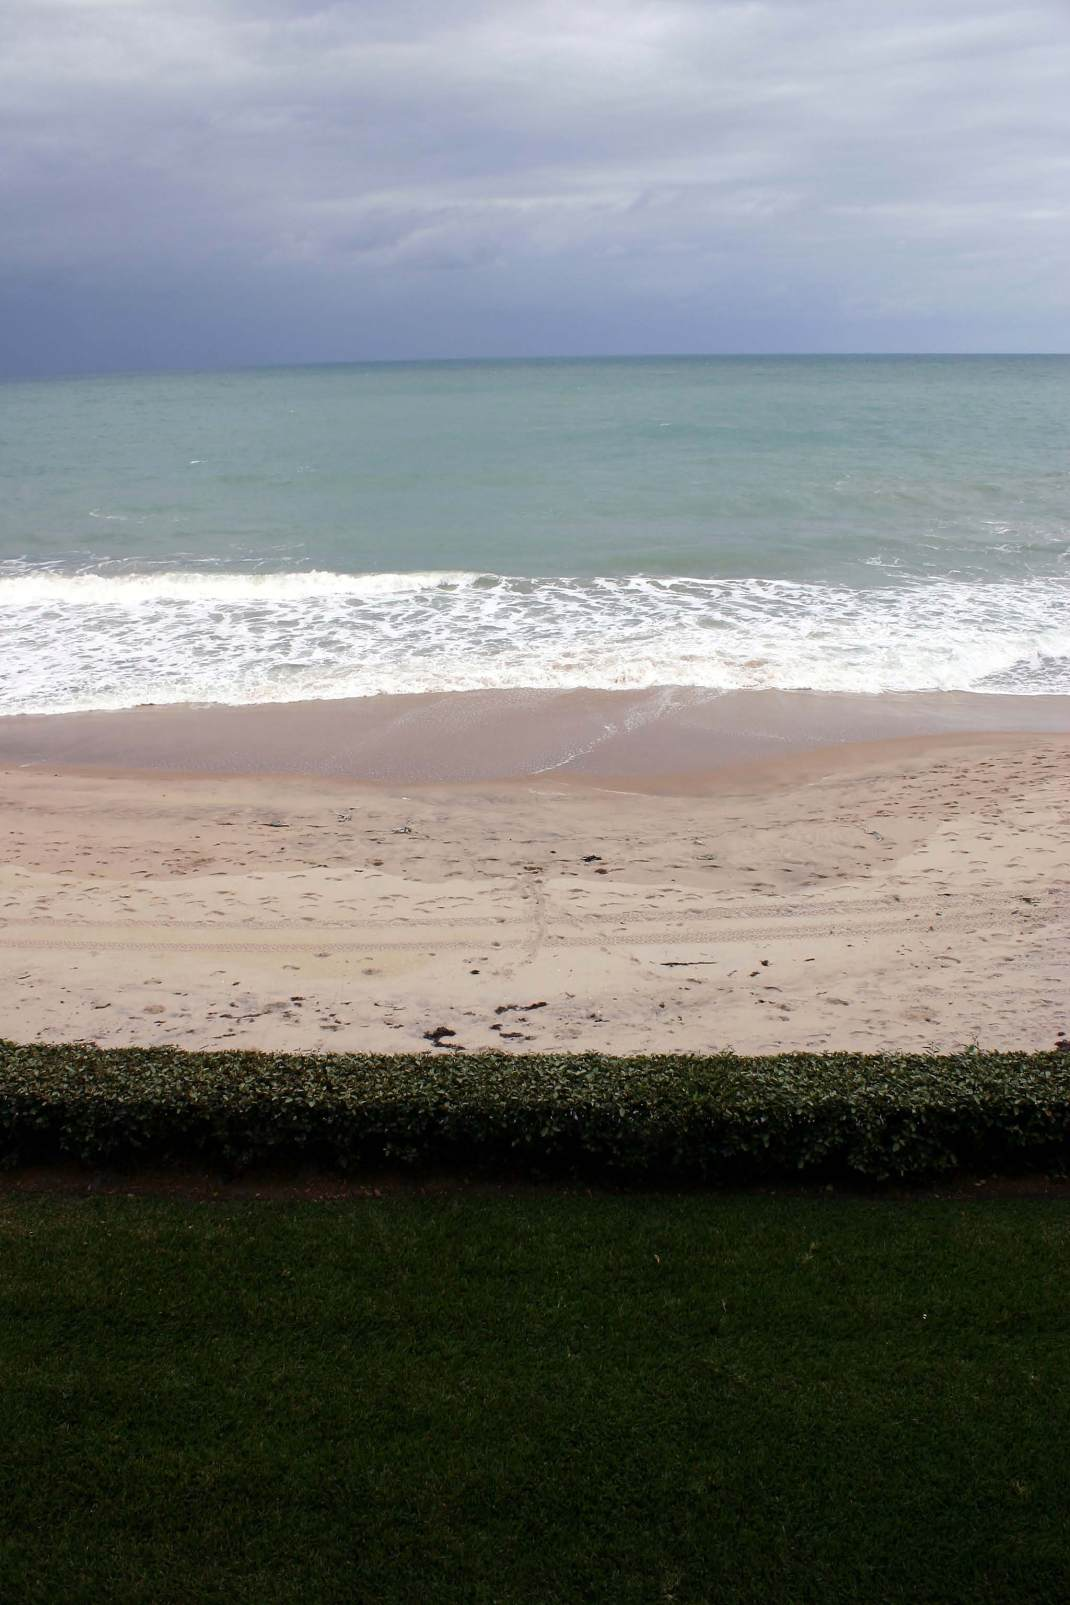 The view from my Uncle's Winter Residence. The waves were almost deafening. It was truly beautiful.